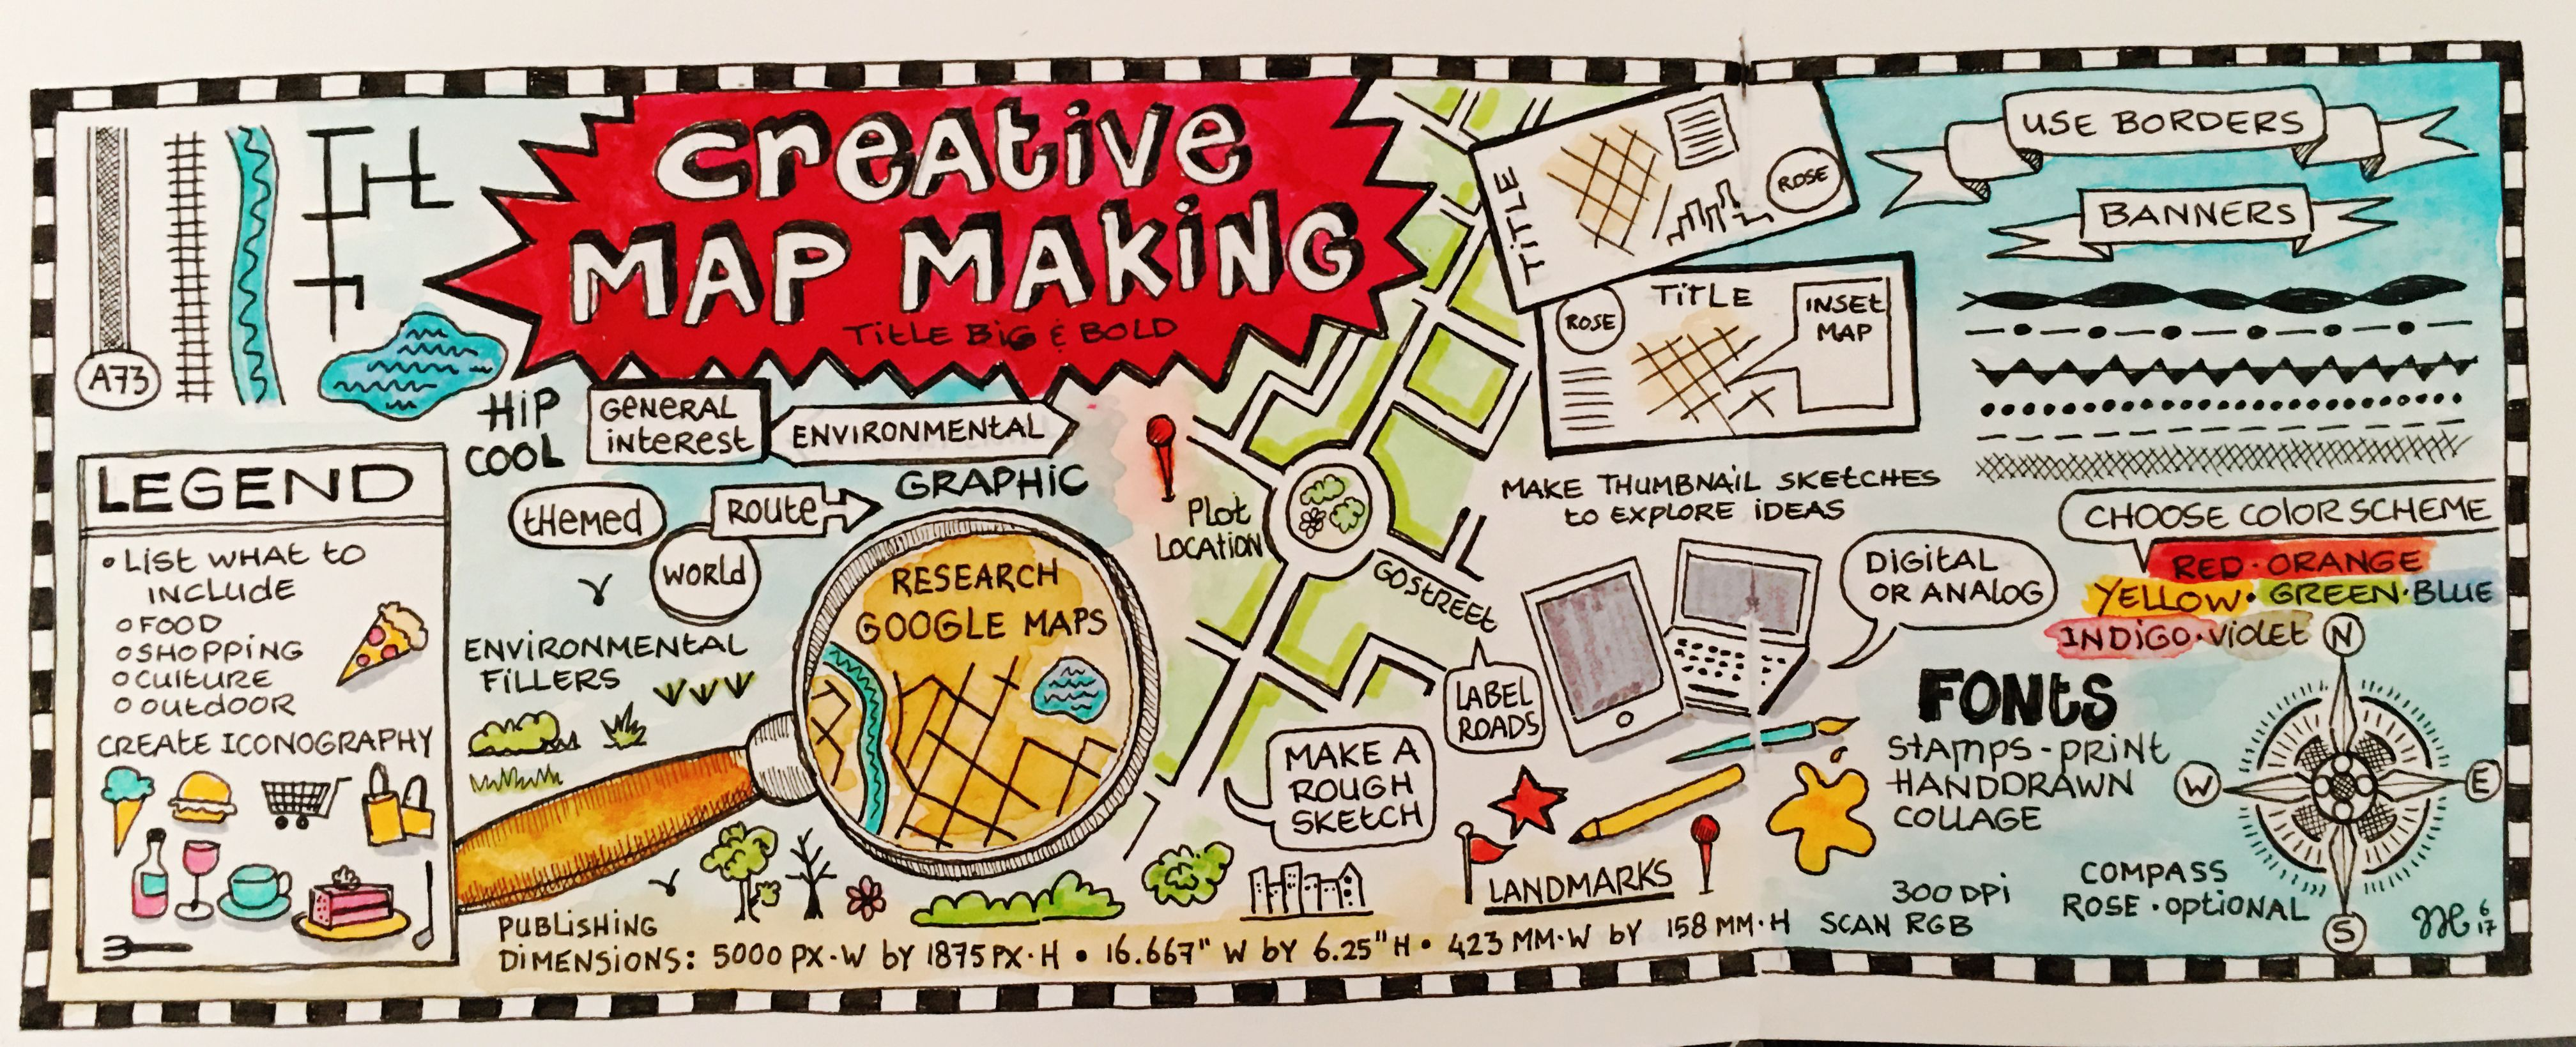 My own map on making creative maps inspired by a klass from